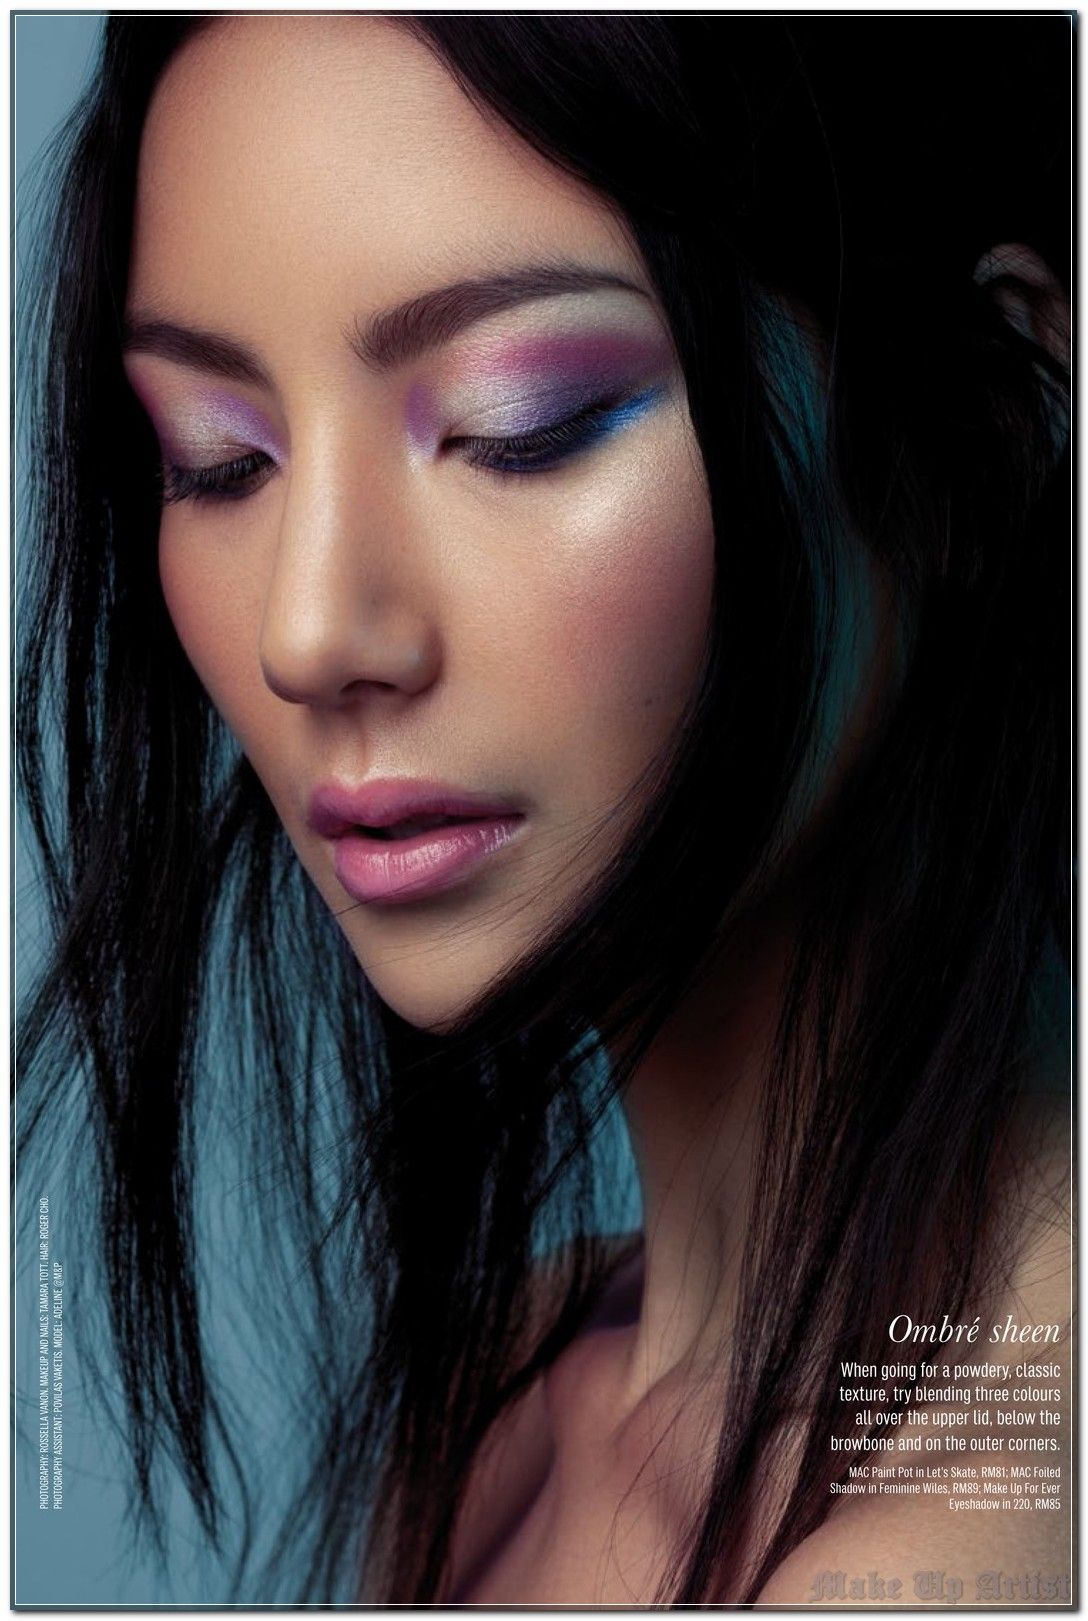 Less = More With Make Up Artist